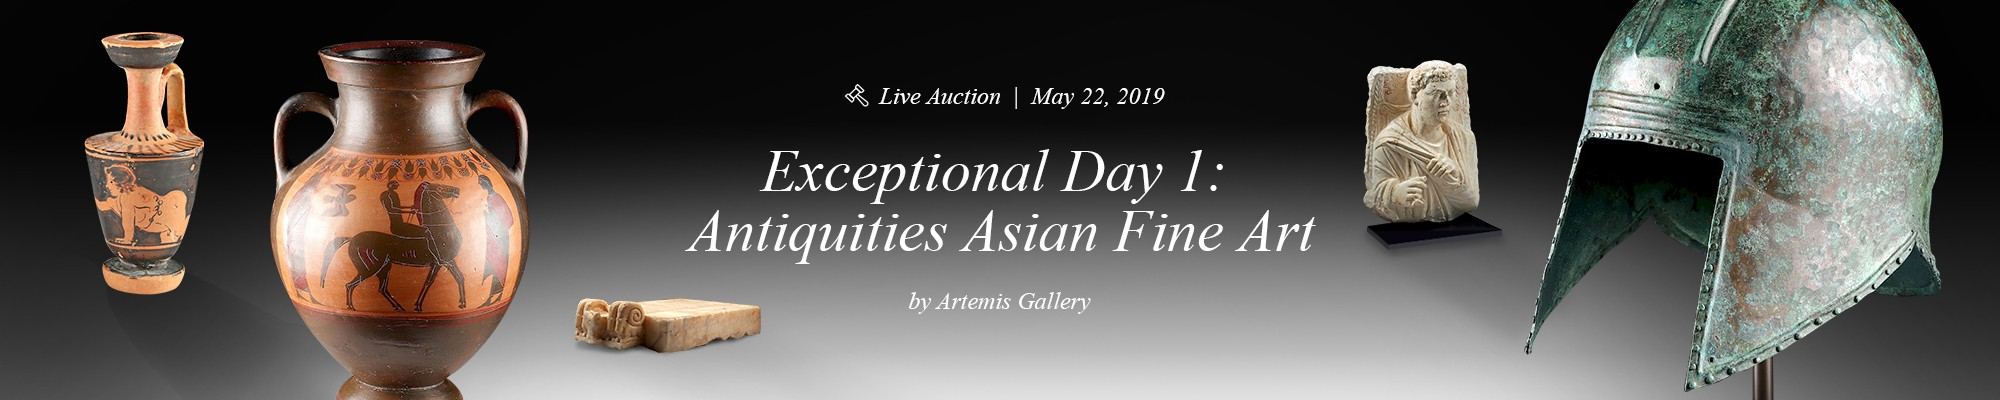 exceptional-day-1-antiquities-asian-fine-art-artemis-gallery